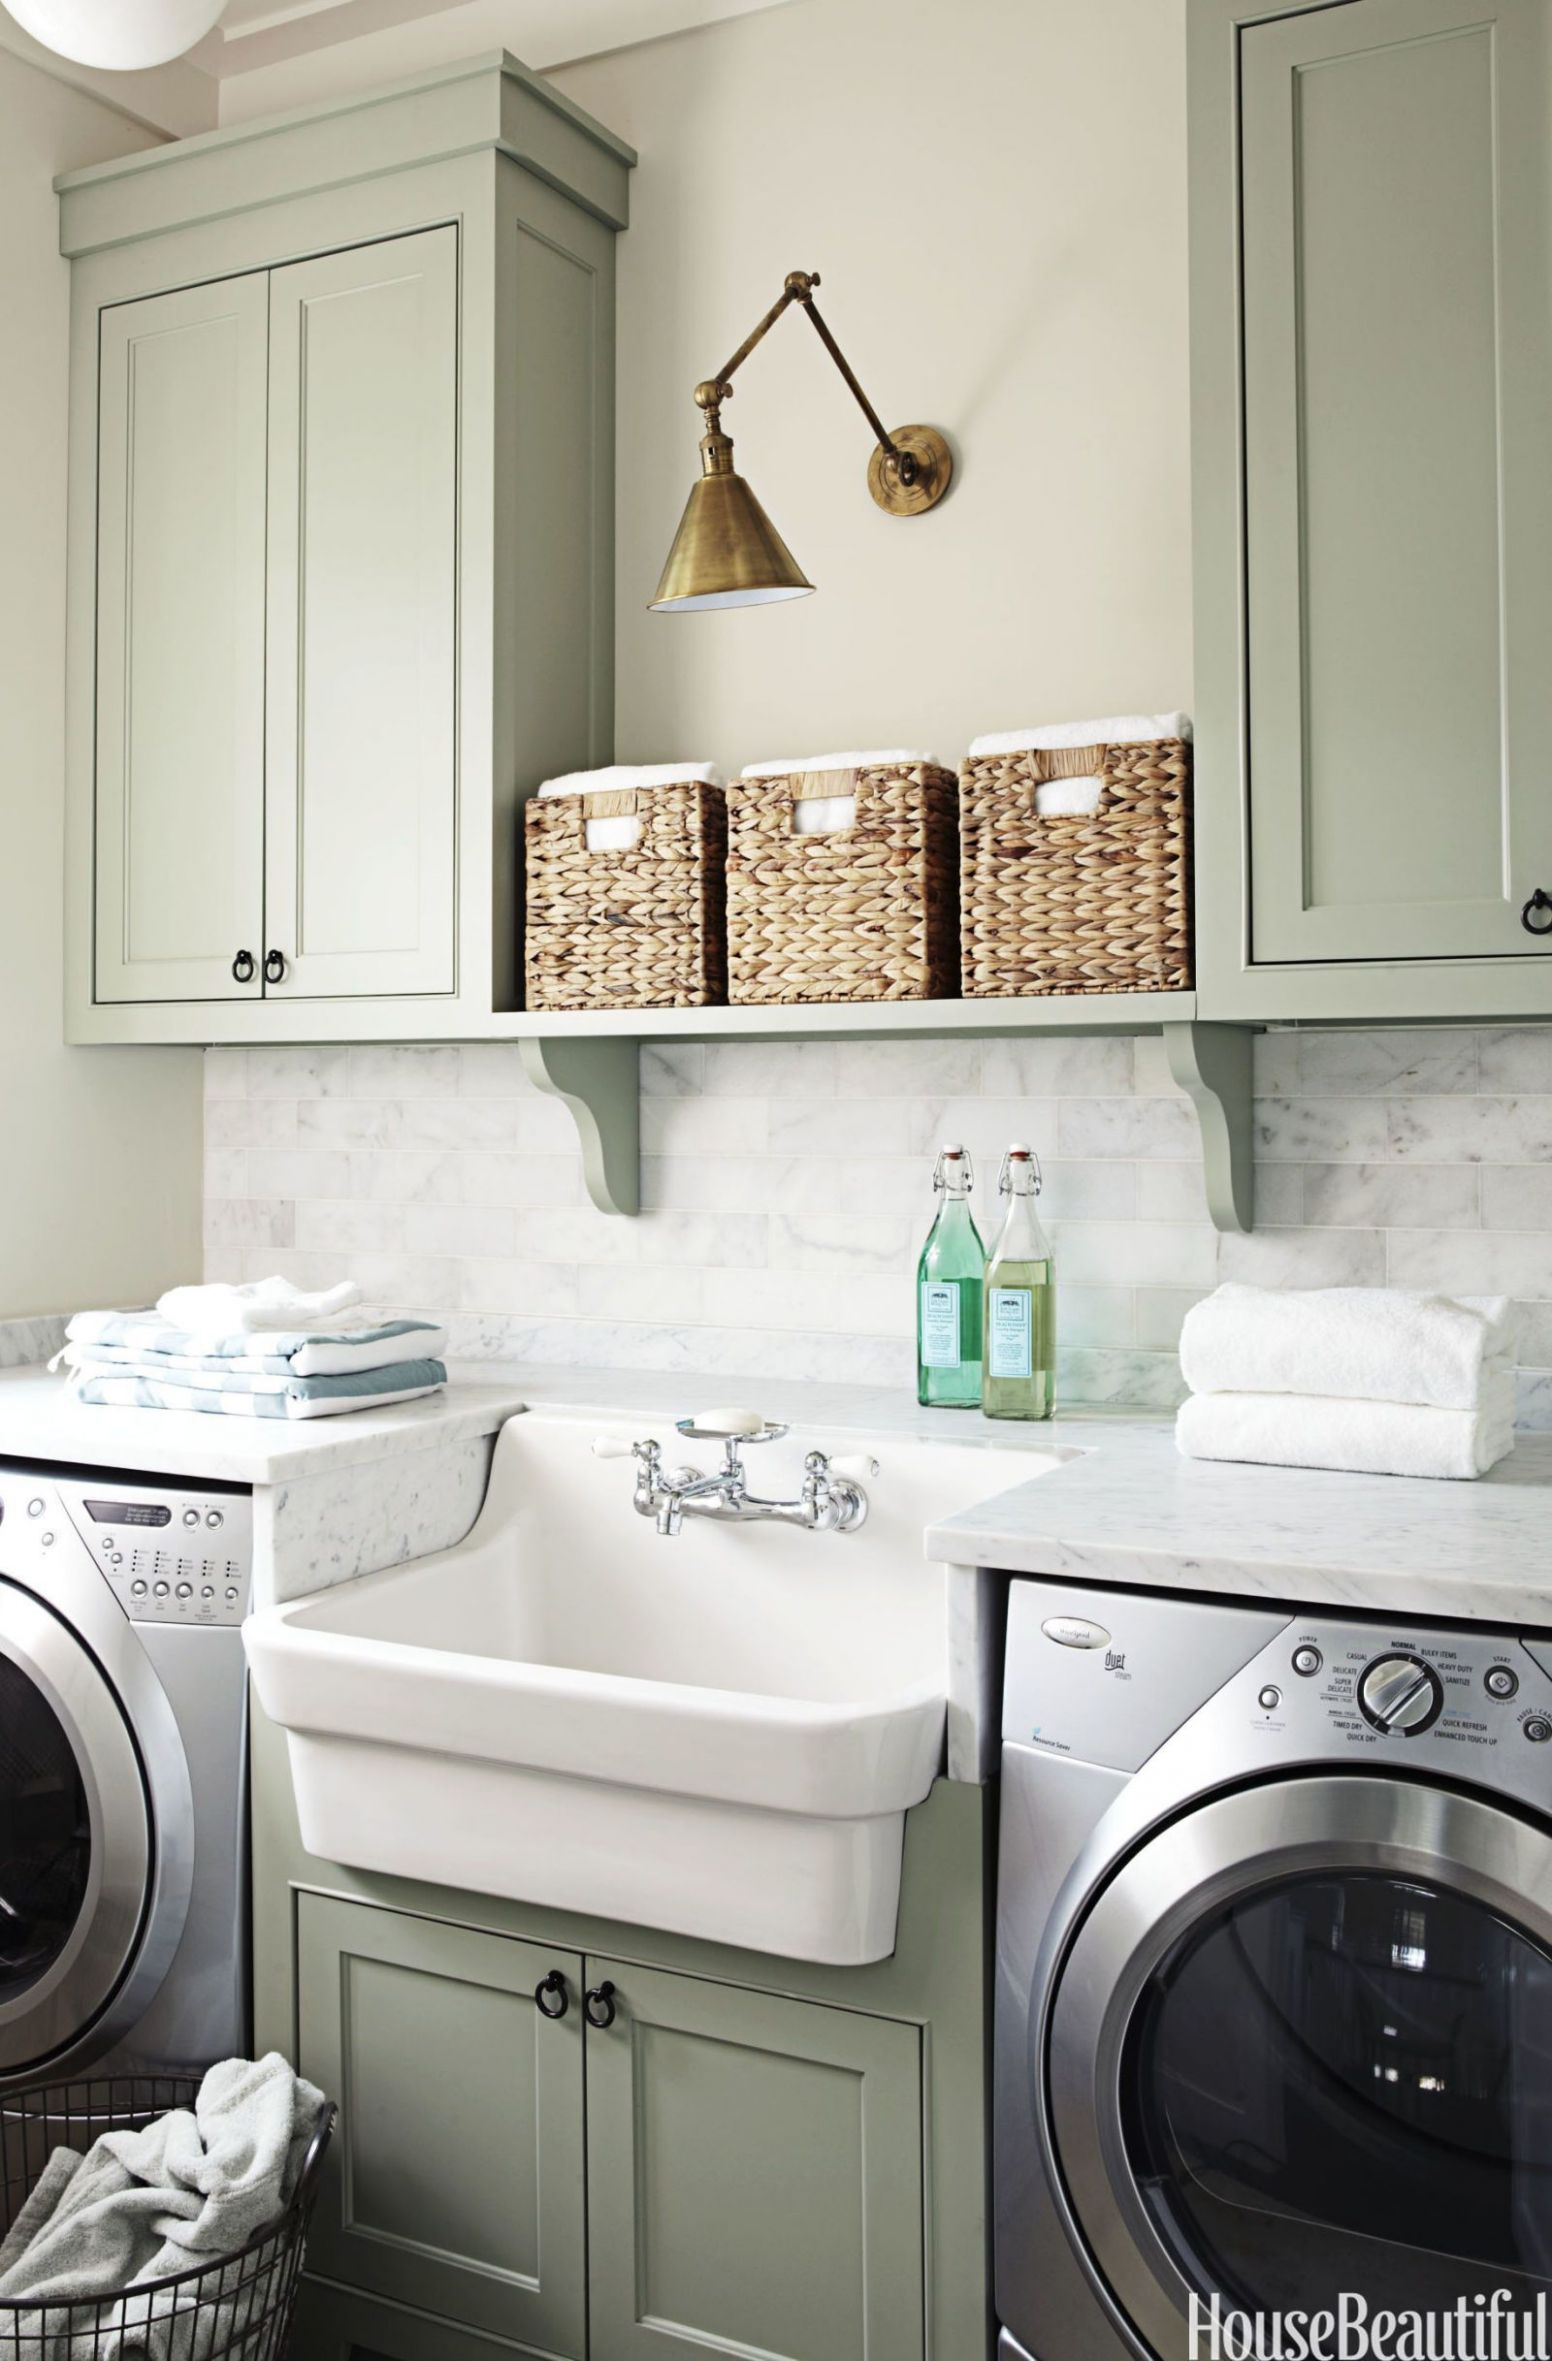 9 Small Laundry Room Ideas - Small Laundry Room Storage Tips - small laundry room ideas uk